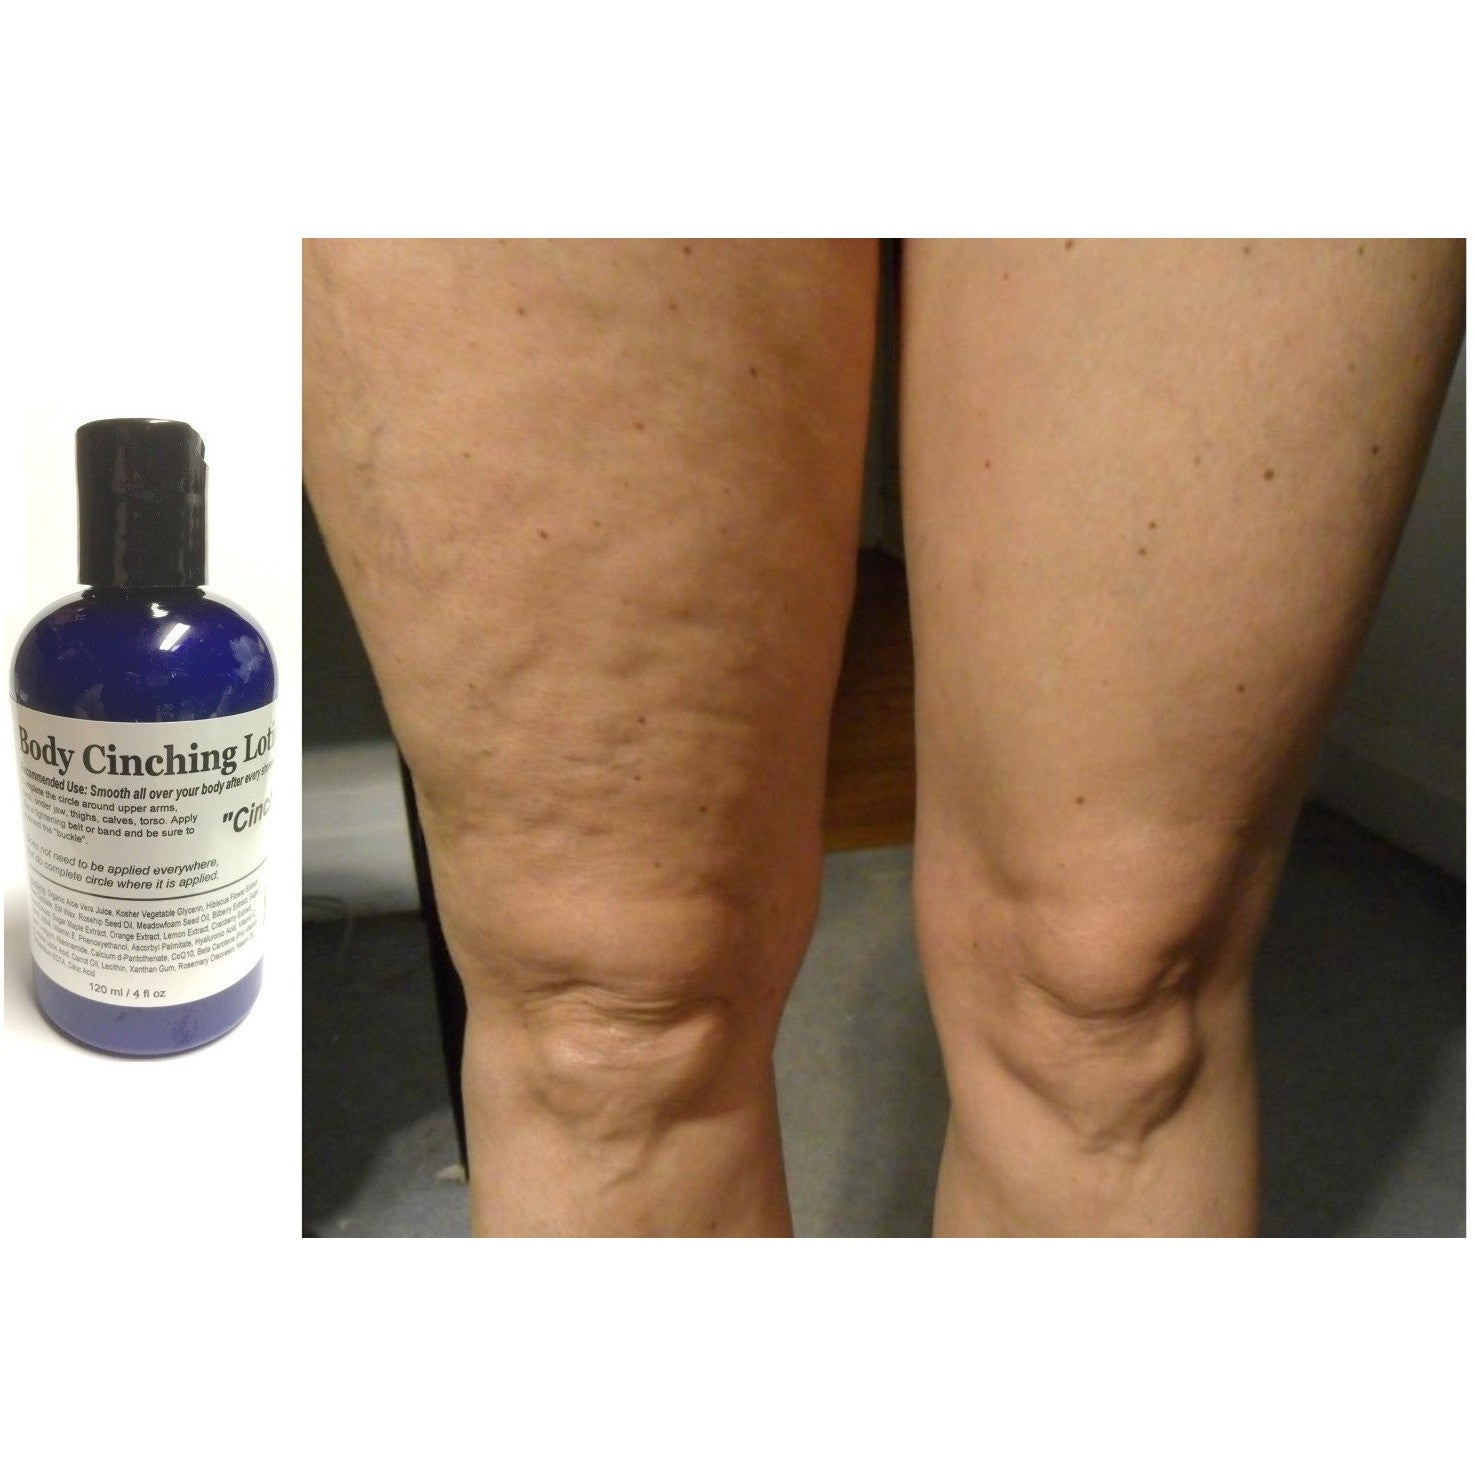 ModelSupplies Body Cinching Lotion DMAE ALA Ester-C HA Cinch Skin Tightening Stretchmarks Conceal Cellulite 4oz - ModelSupplies